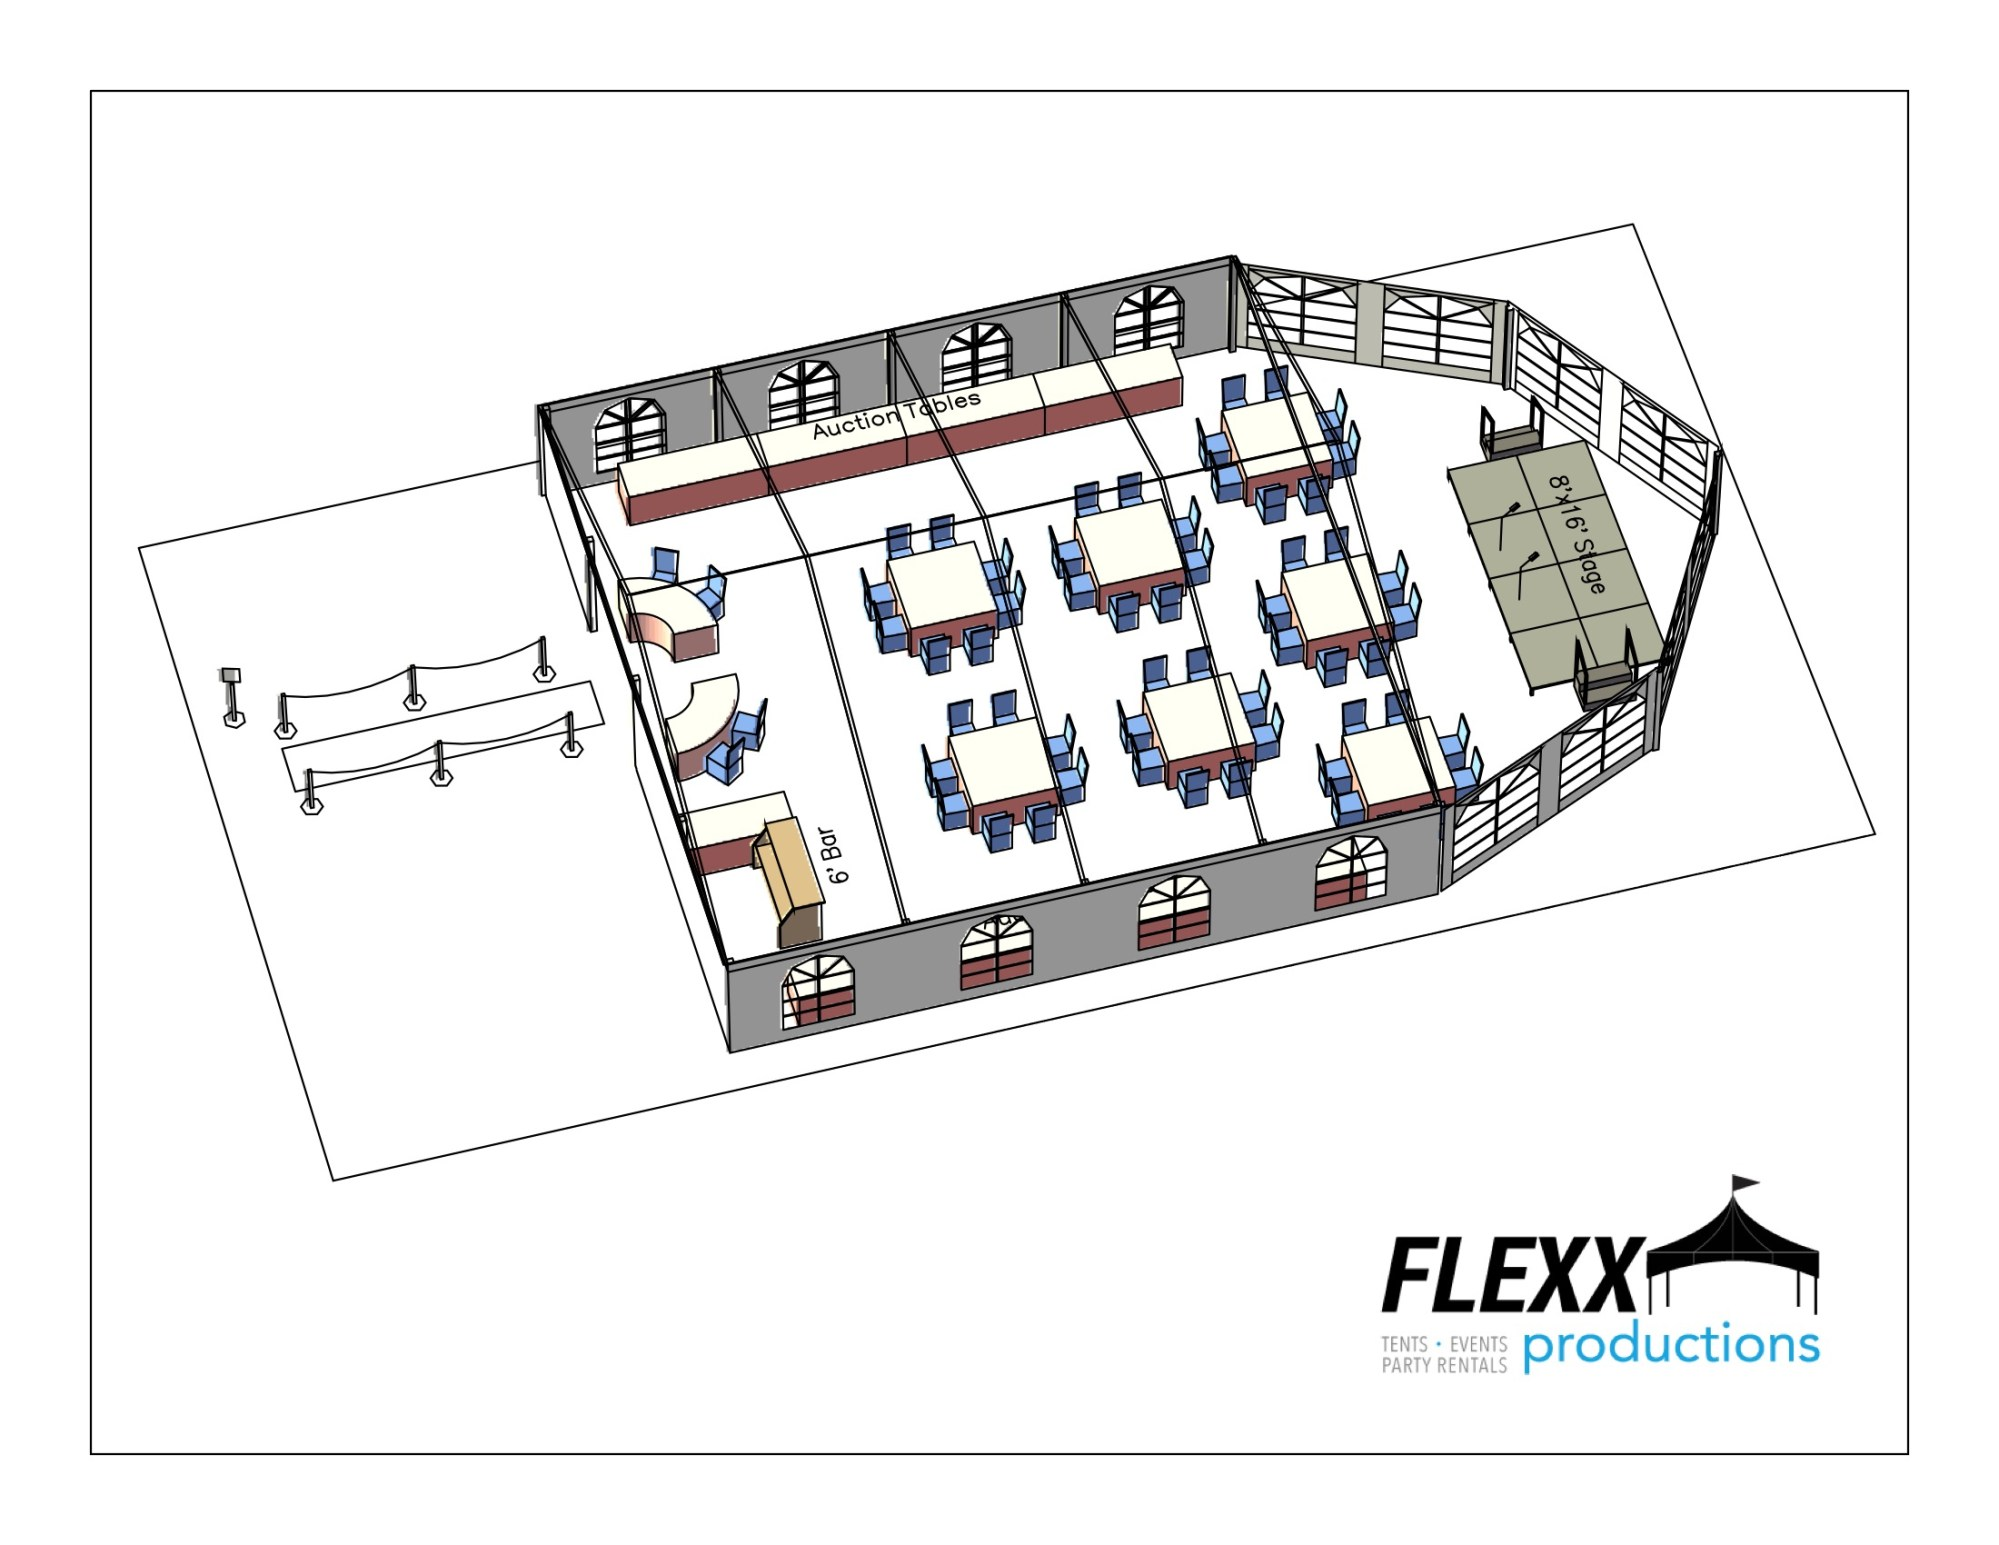 hight resolution of 40x40 flexx productions clearspan tent layout